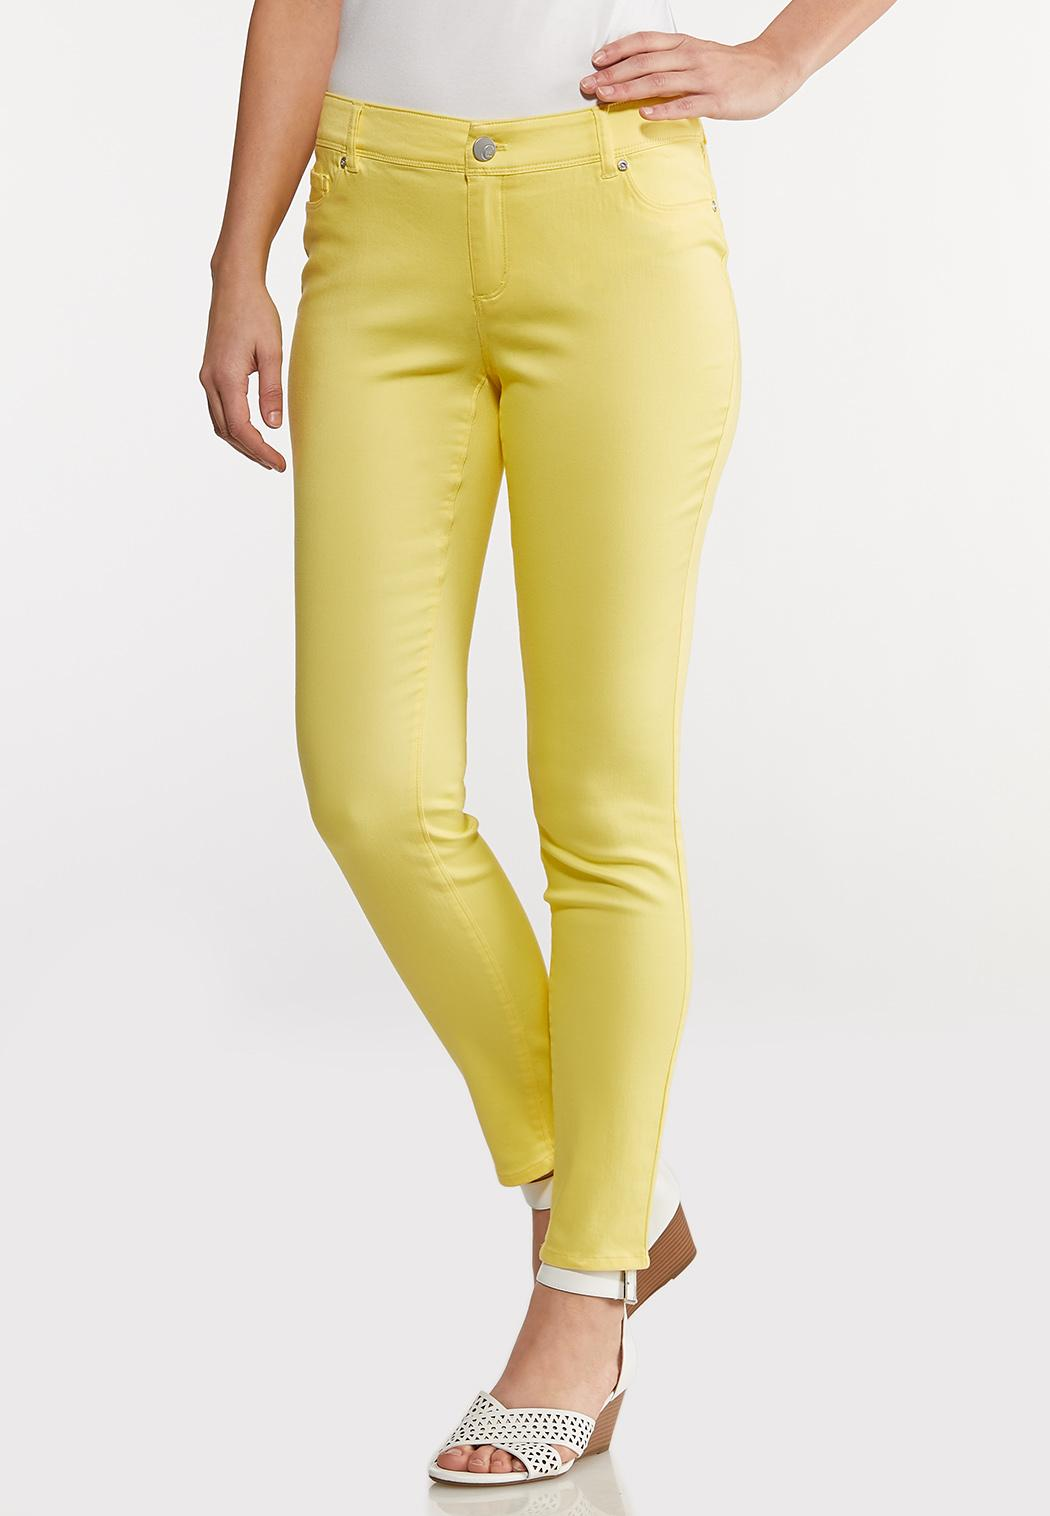 Uplifting Colored Jeggings